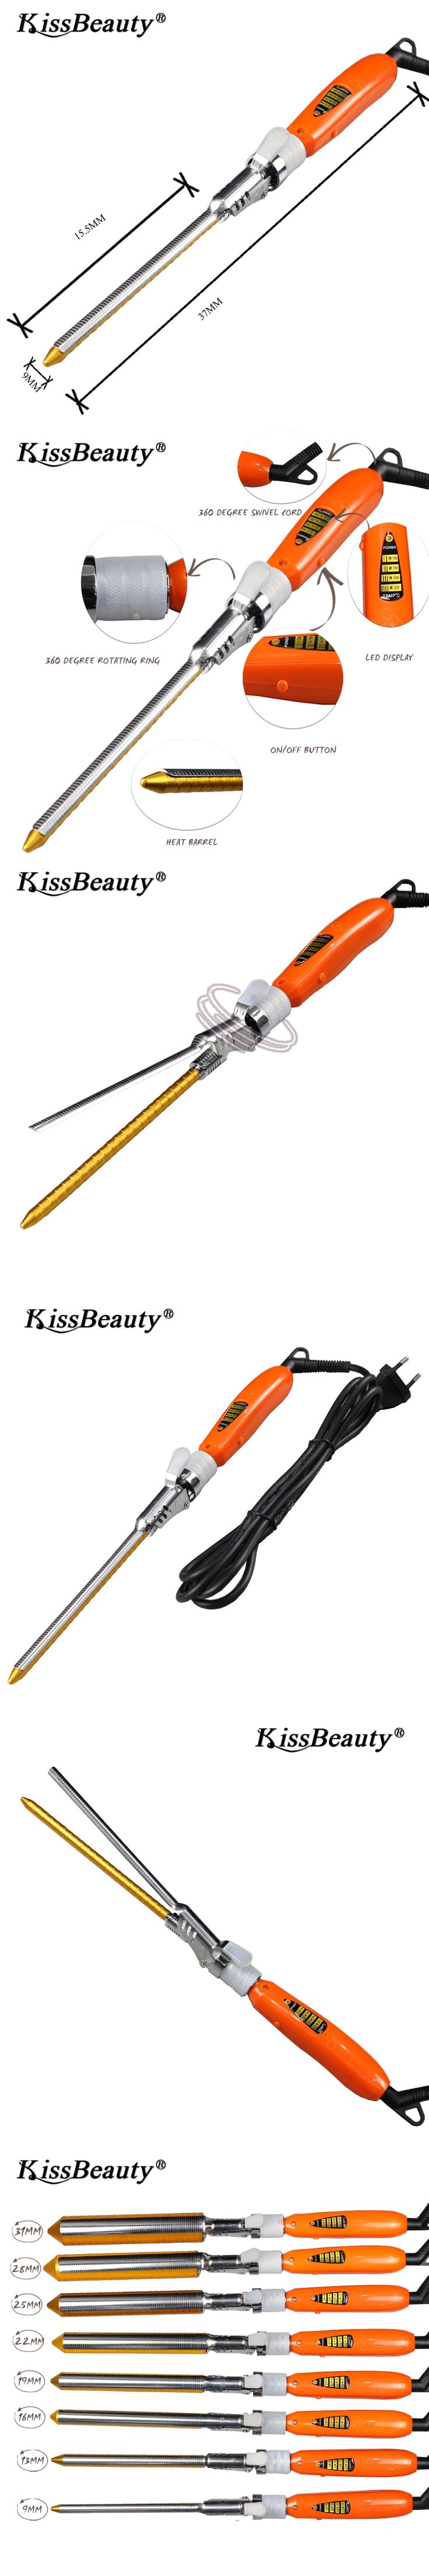 Kissbeauty Mini Size 9mm Hair Curler  to 31mm Ceramic Curling Irons Beach Waver Curling Iron Electric Curler Iron Hairdressing